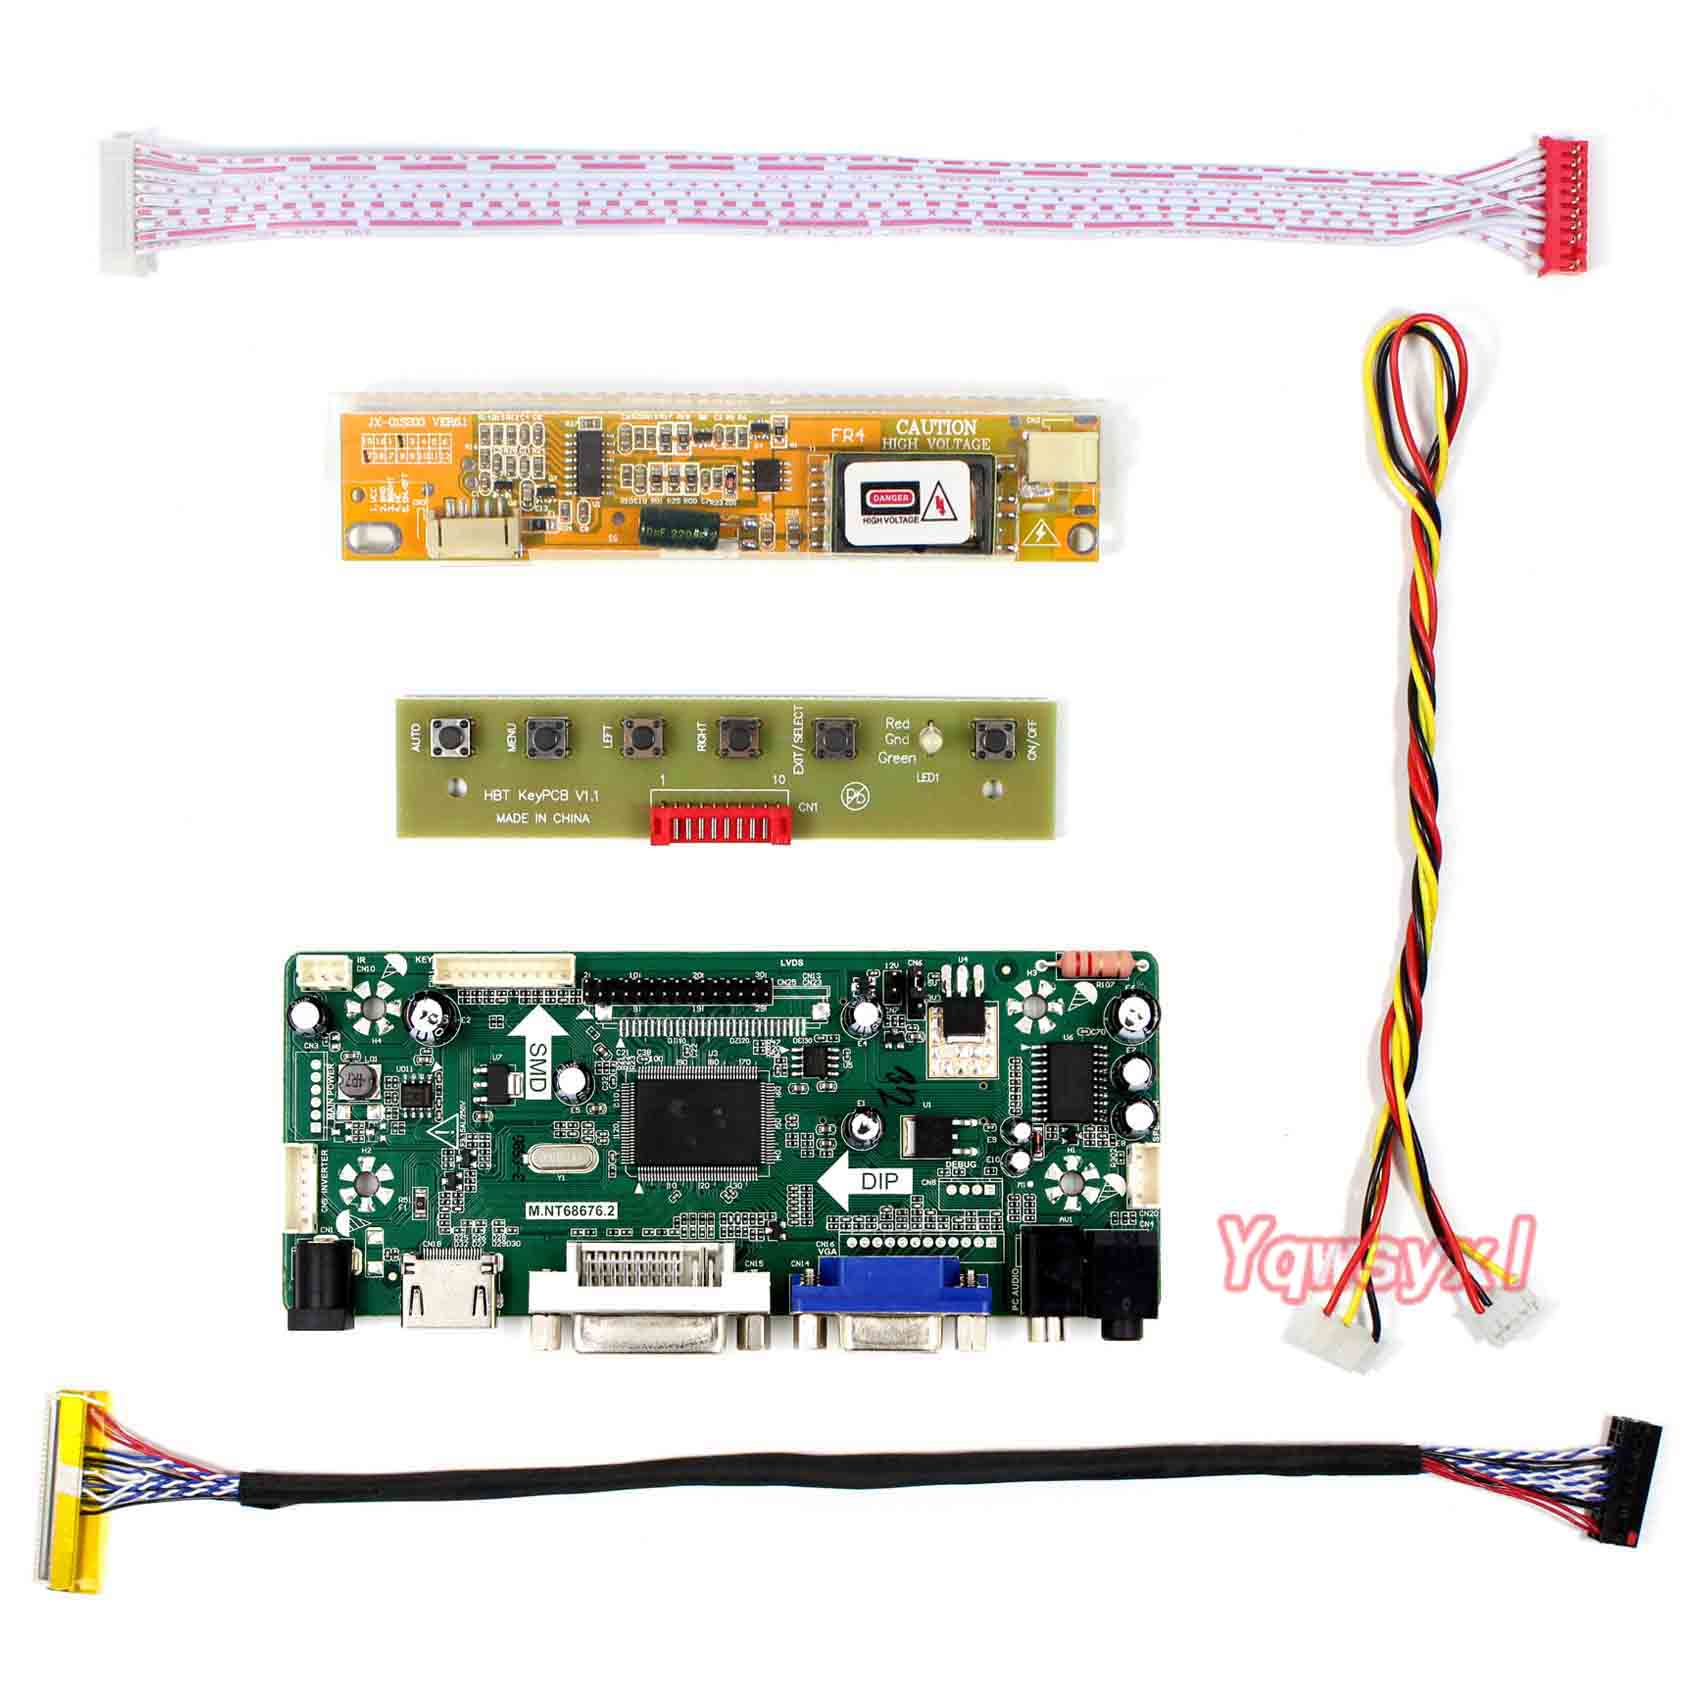 Yqwsyxl Control Board Monitor Kit For LTN154X3-L09  LTN154X3 L09 HDMI + DVI + VGA LCD LED Screen Controller Board Driver